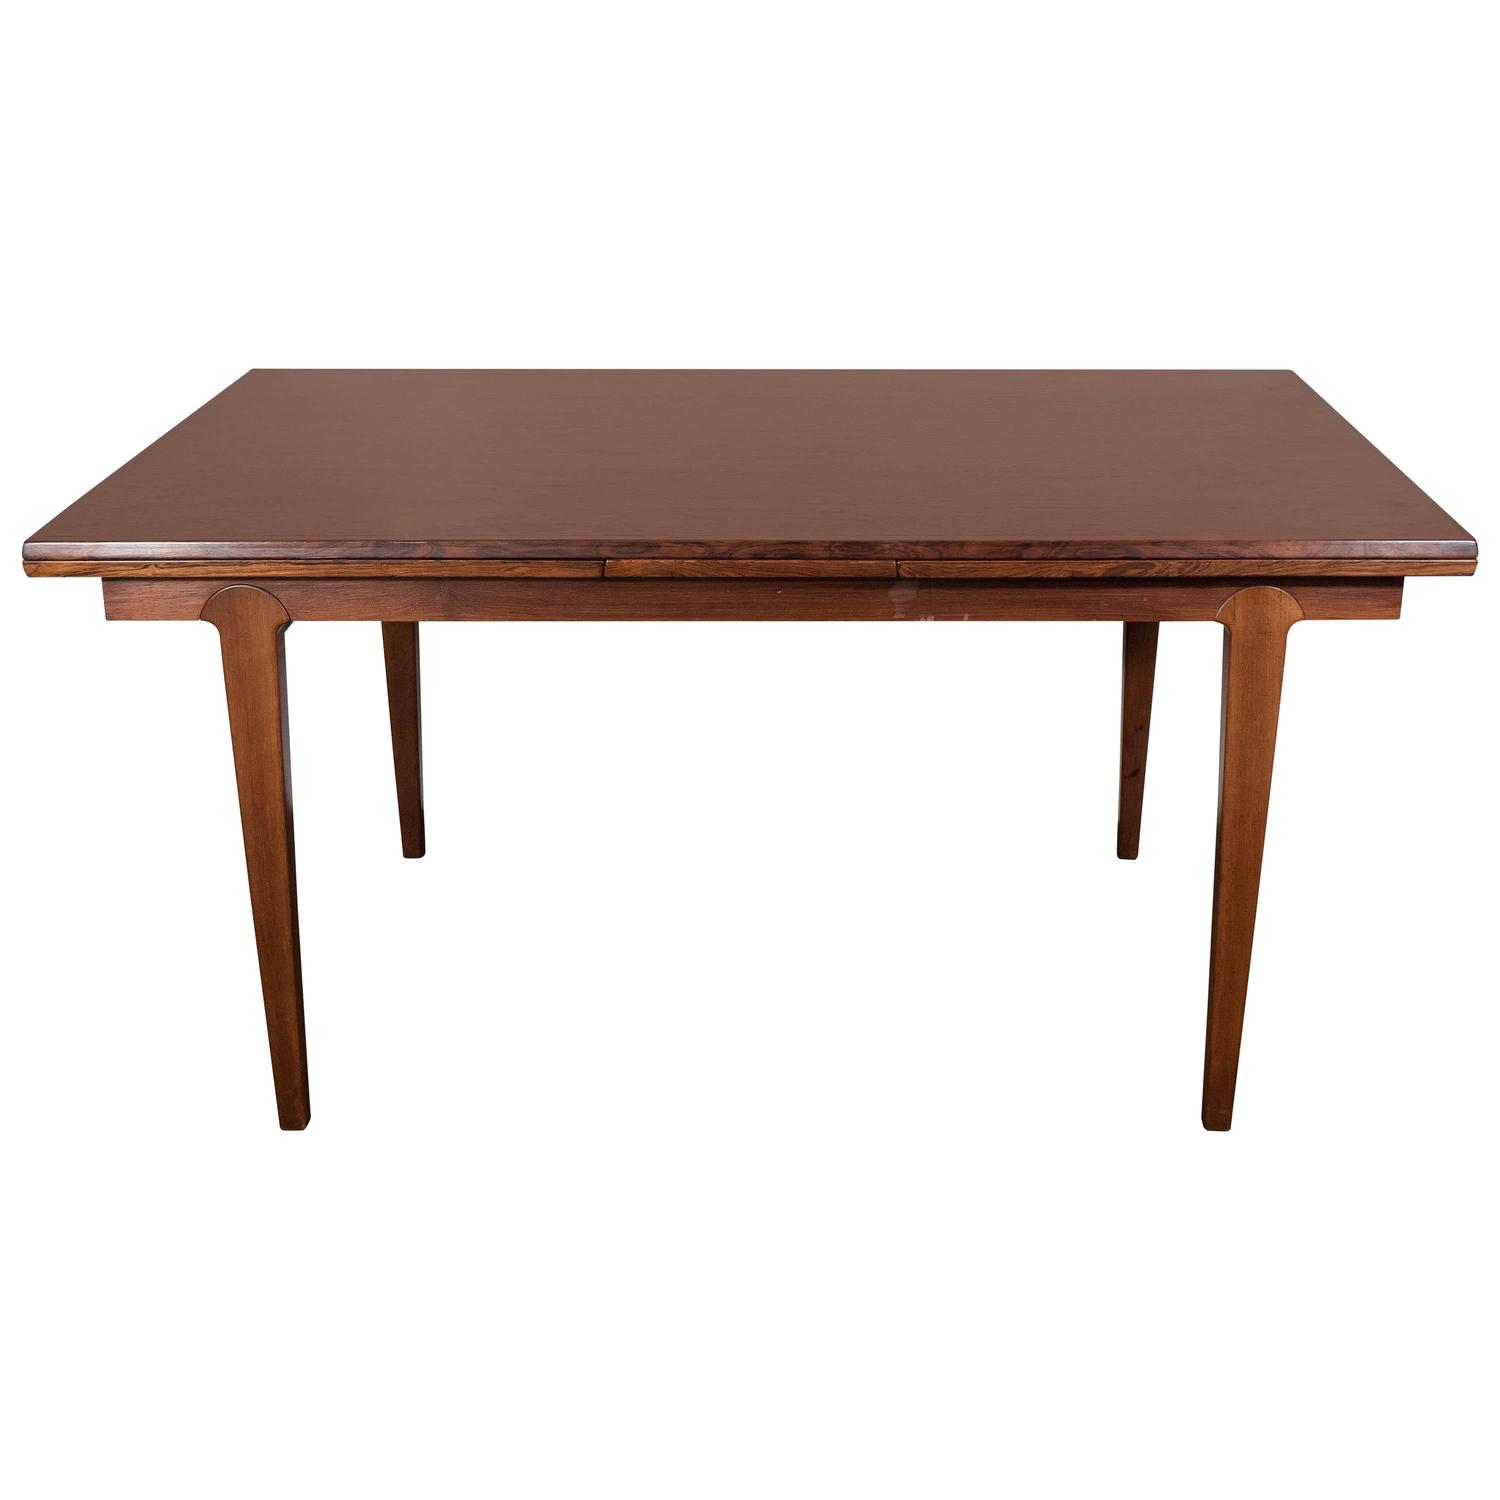 Scandinavian midcentury dining table with extension leaves at 1stdibs - Dining table scandinavian ...